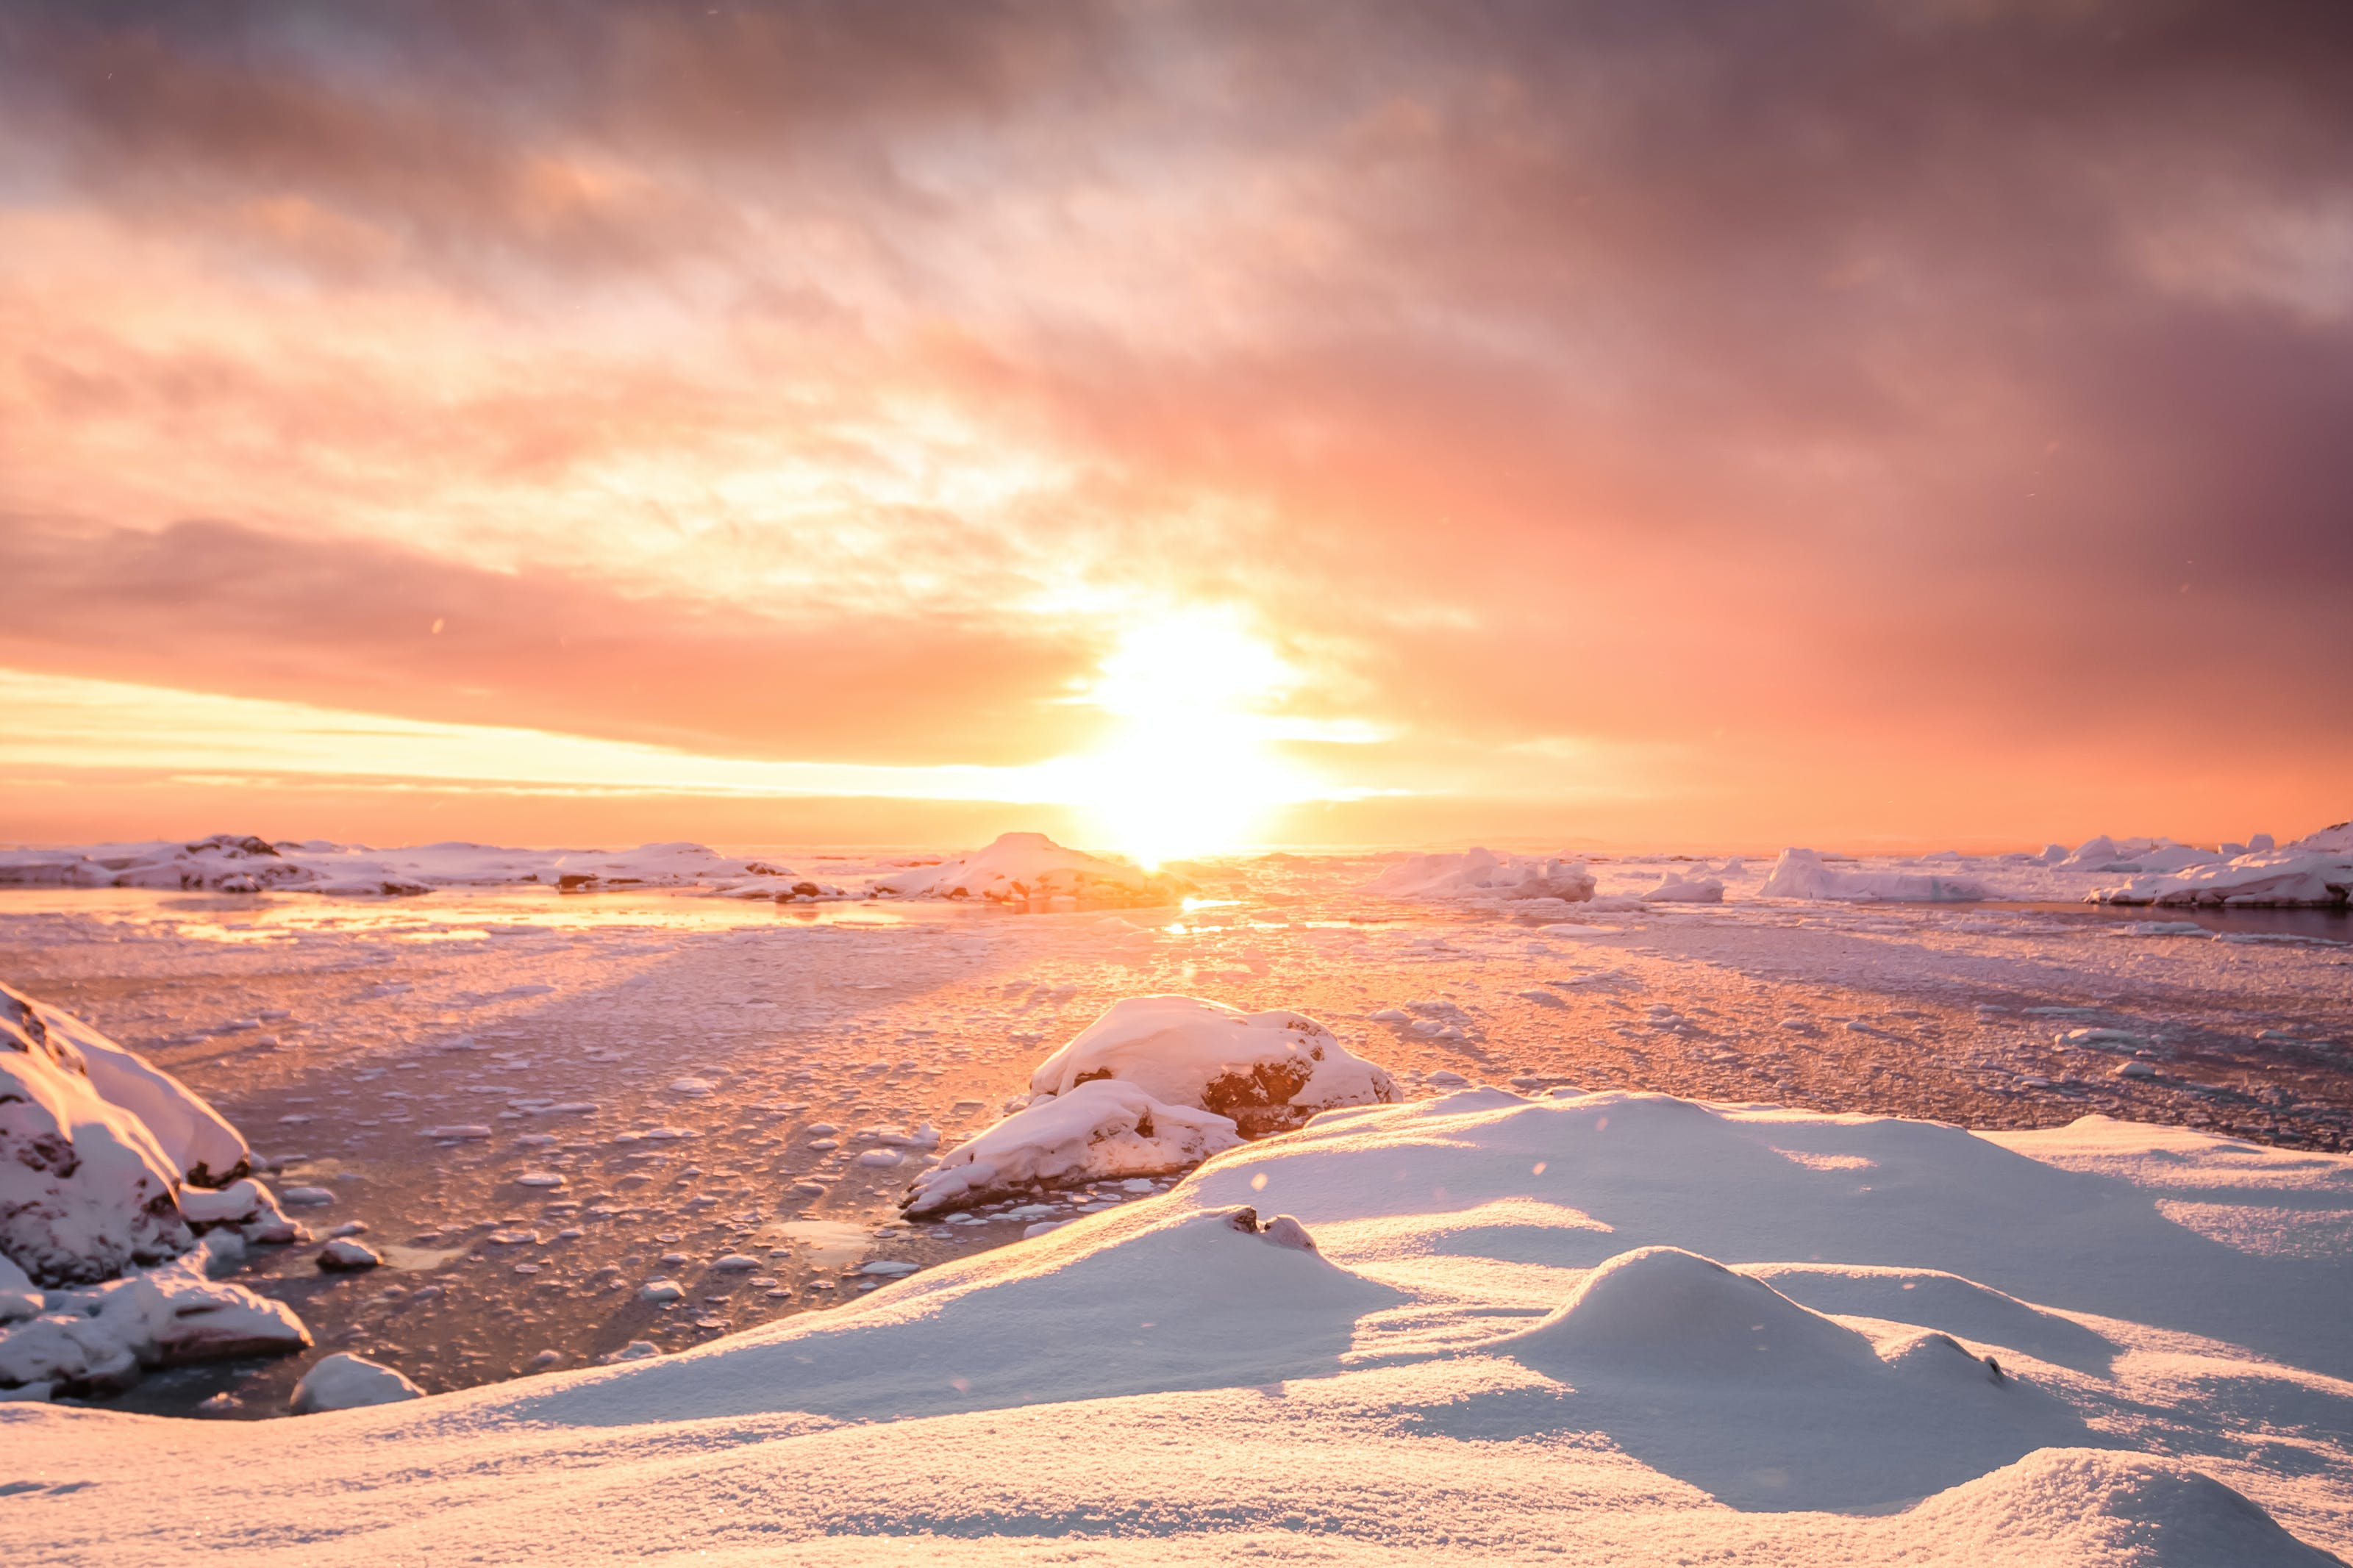 Cruise season in Antarctica is suprisingly more pleasant and more scenic than you'd think.